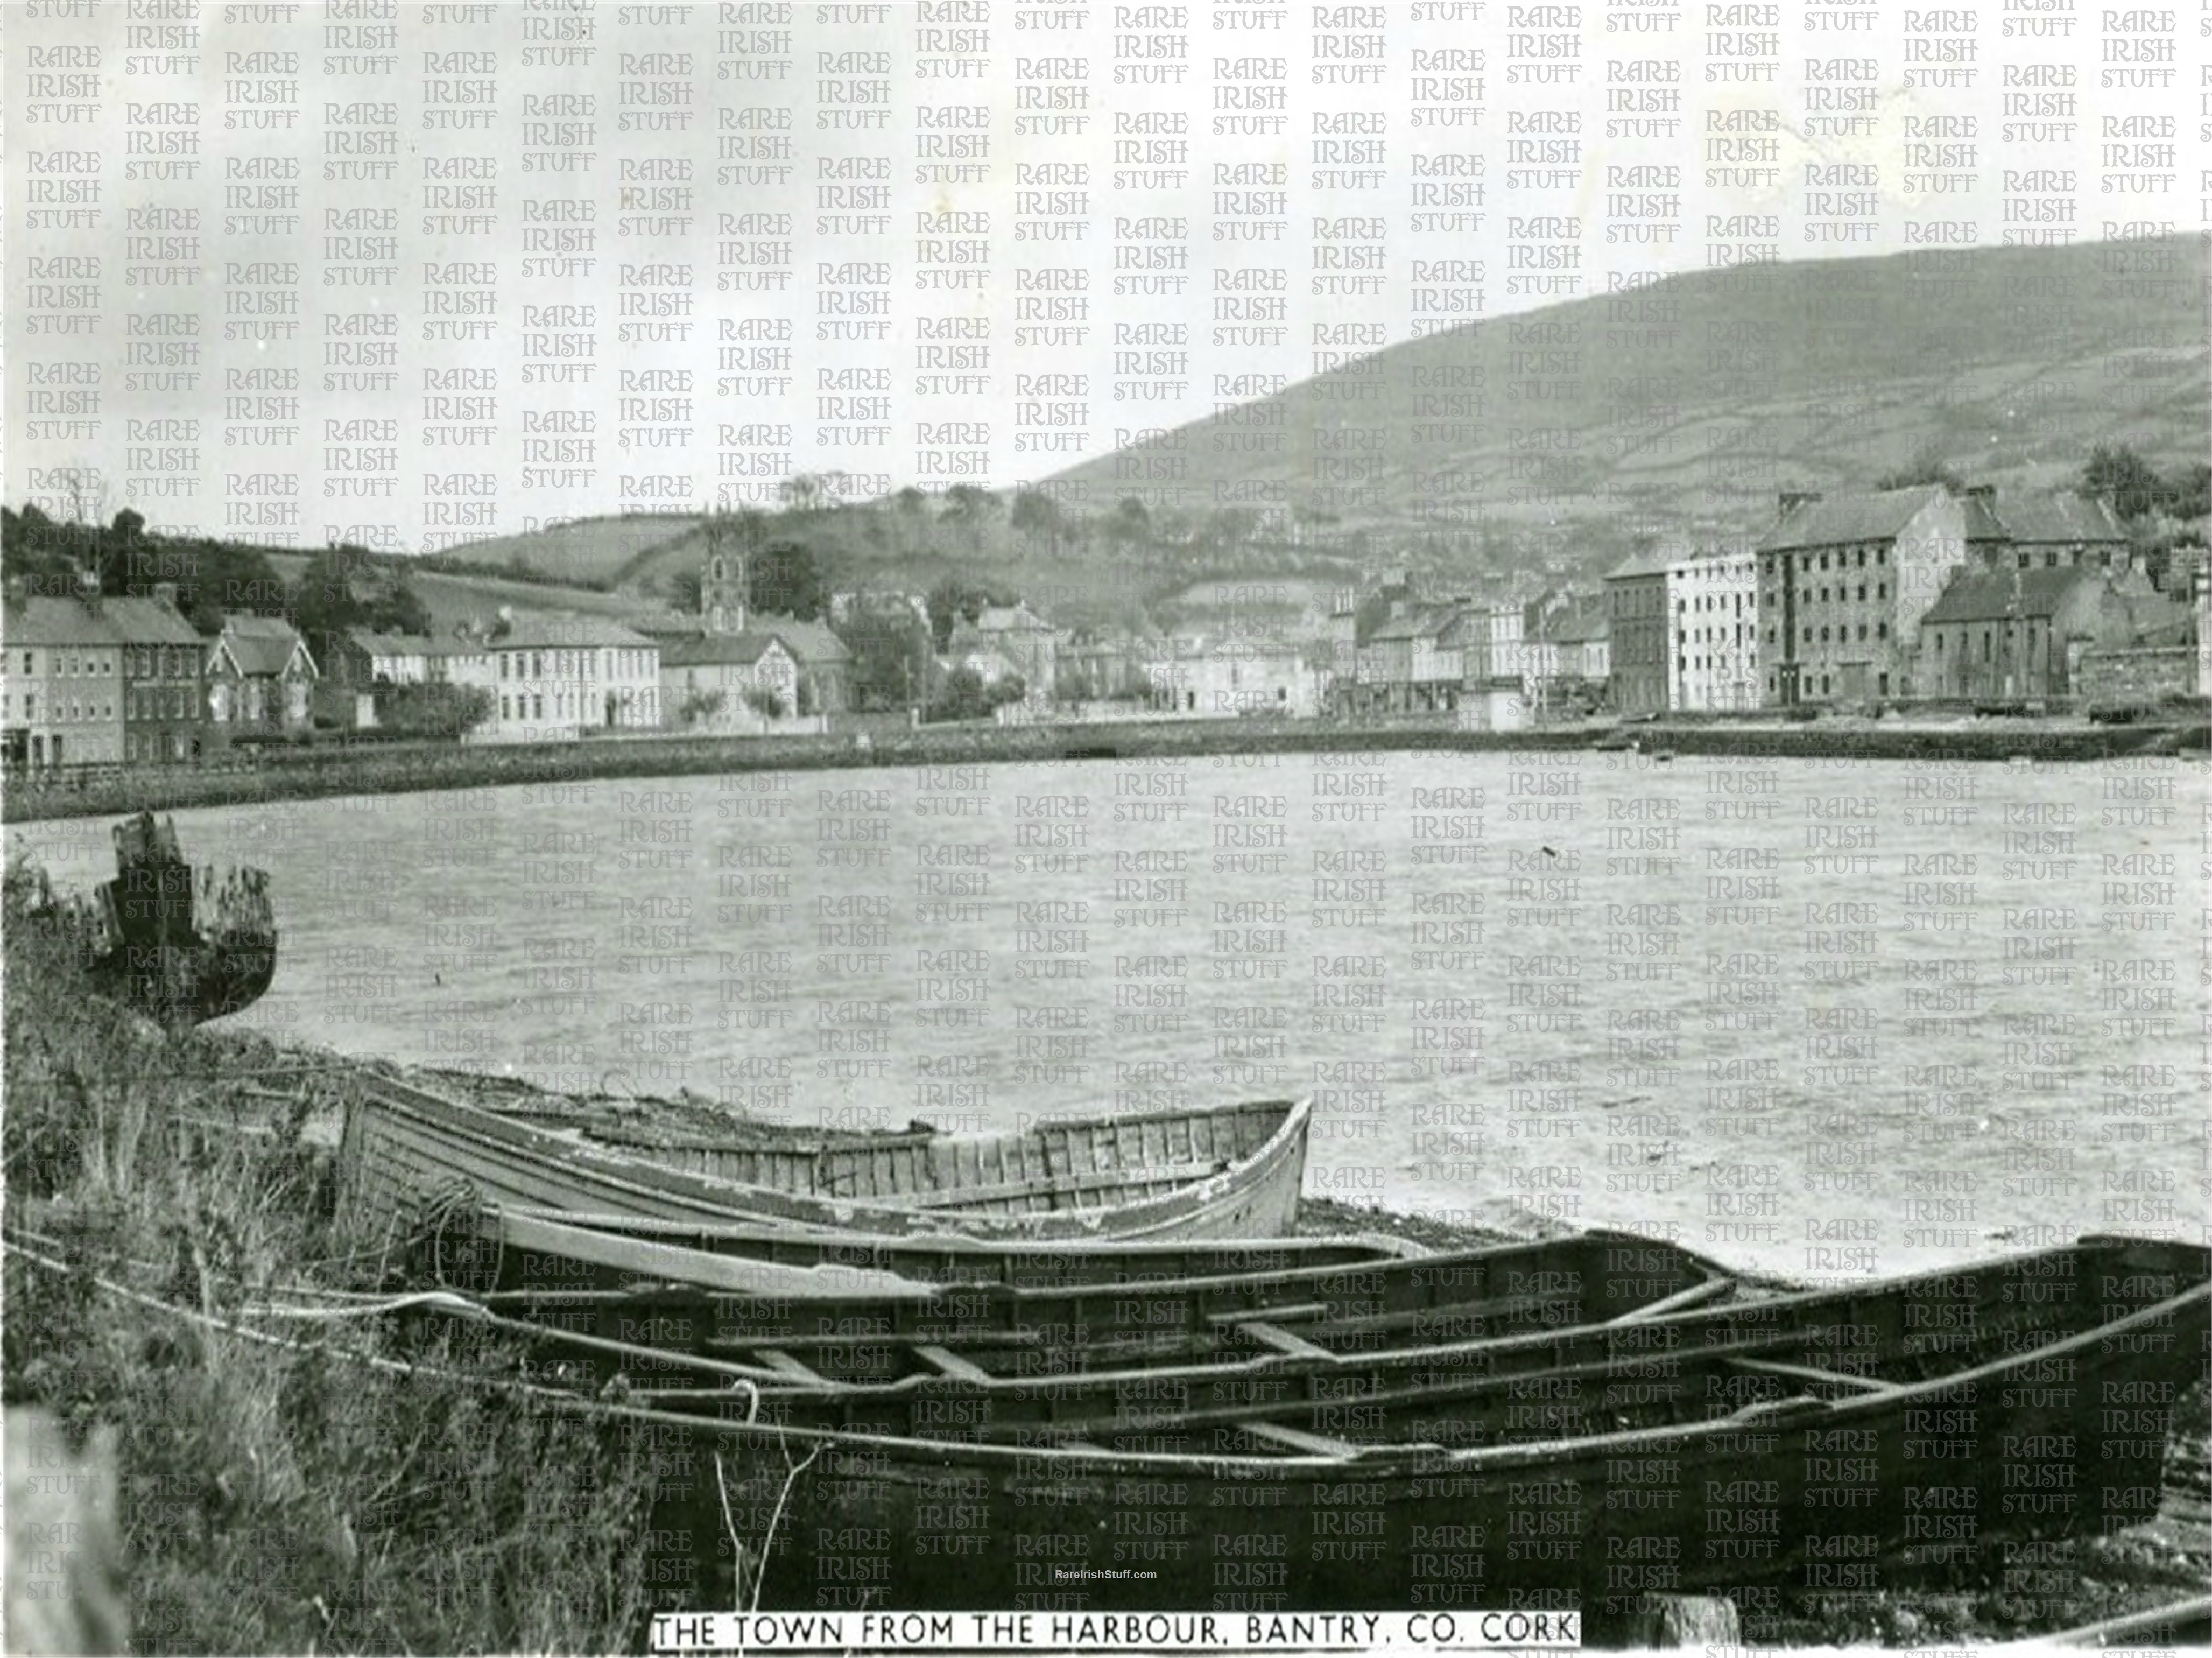 Bantry  Town   Co  Cork   Ireland 1920  Thumbnail0